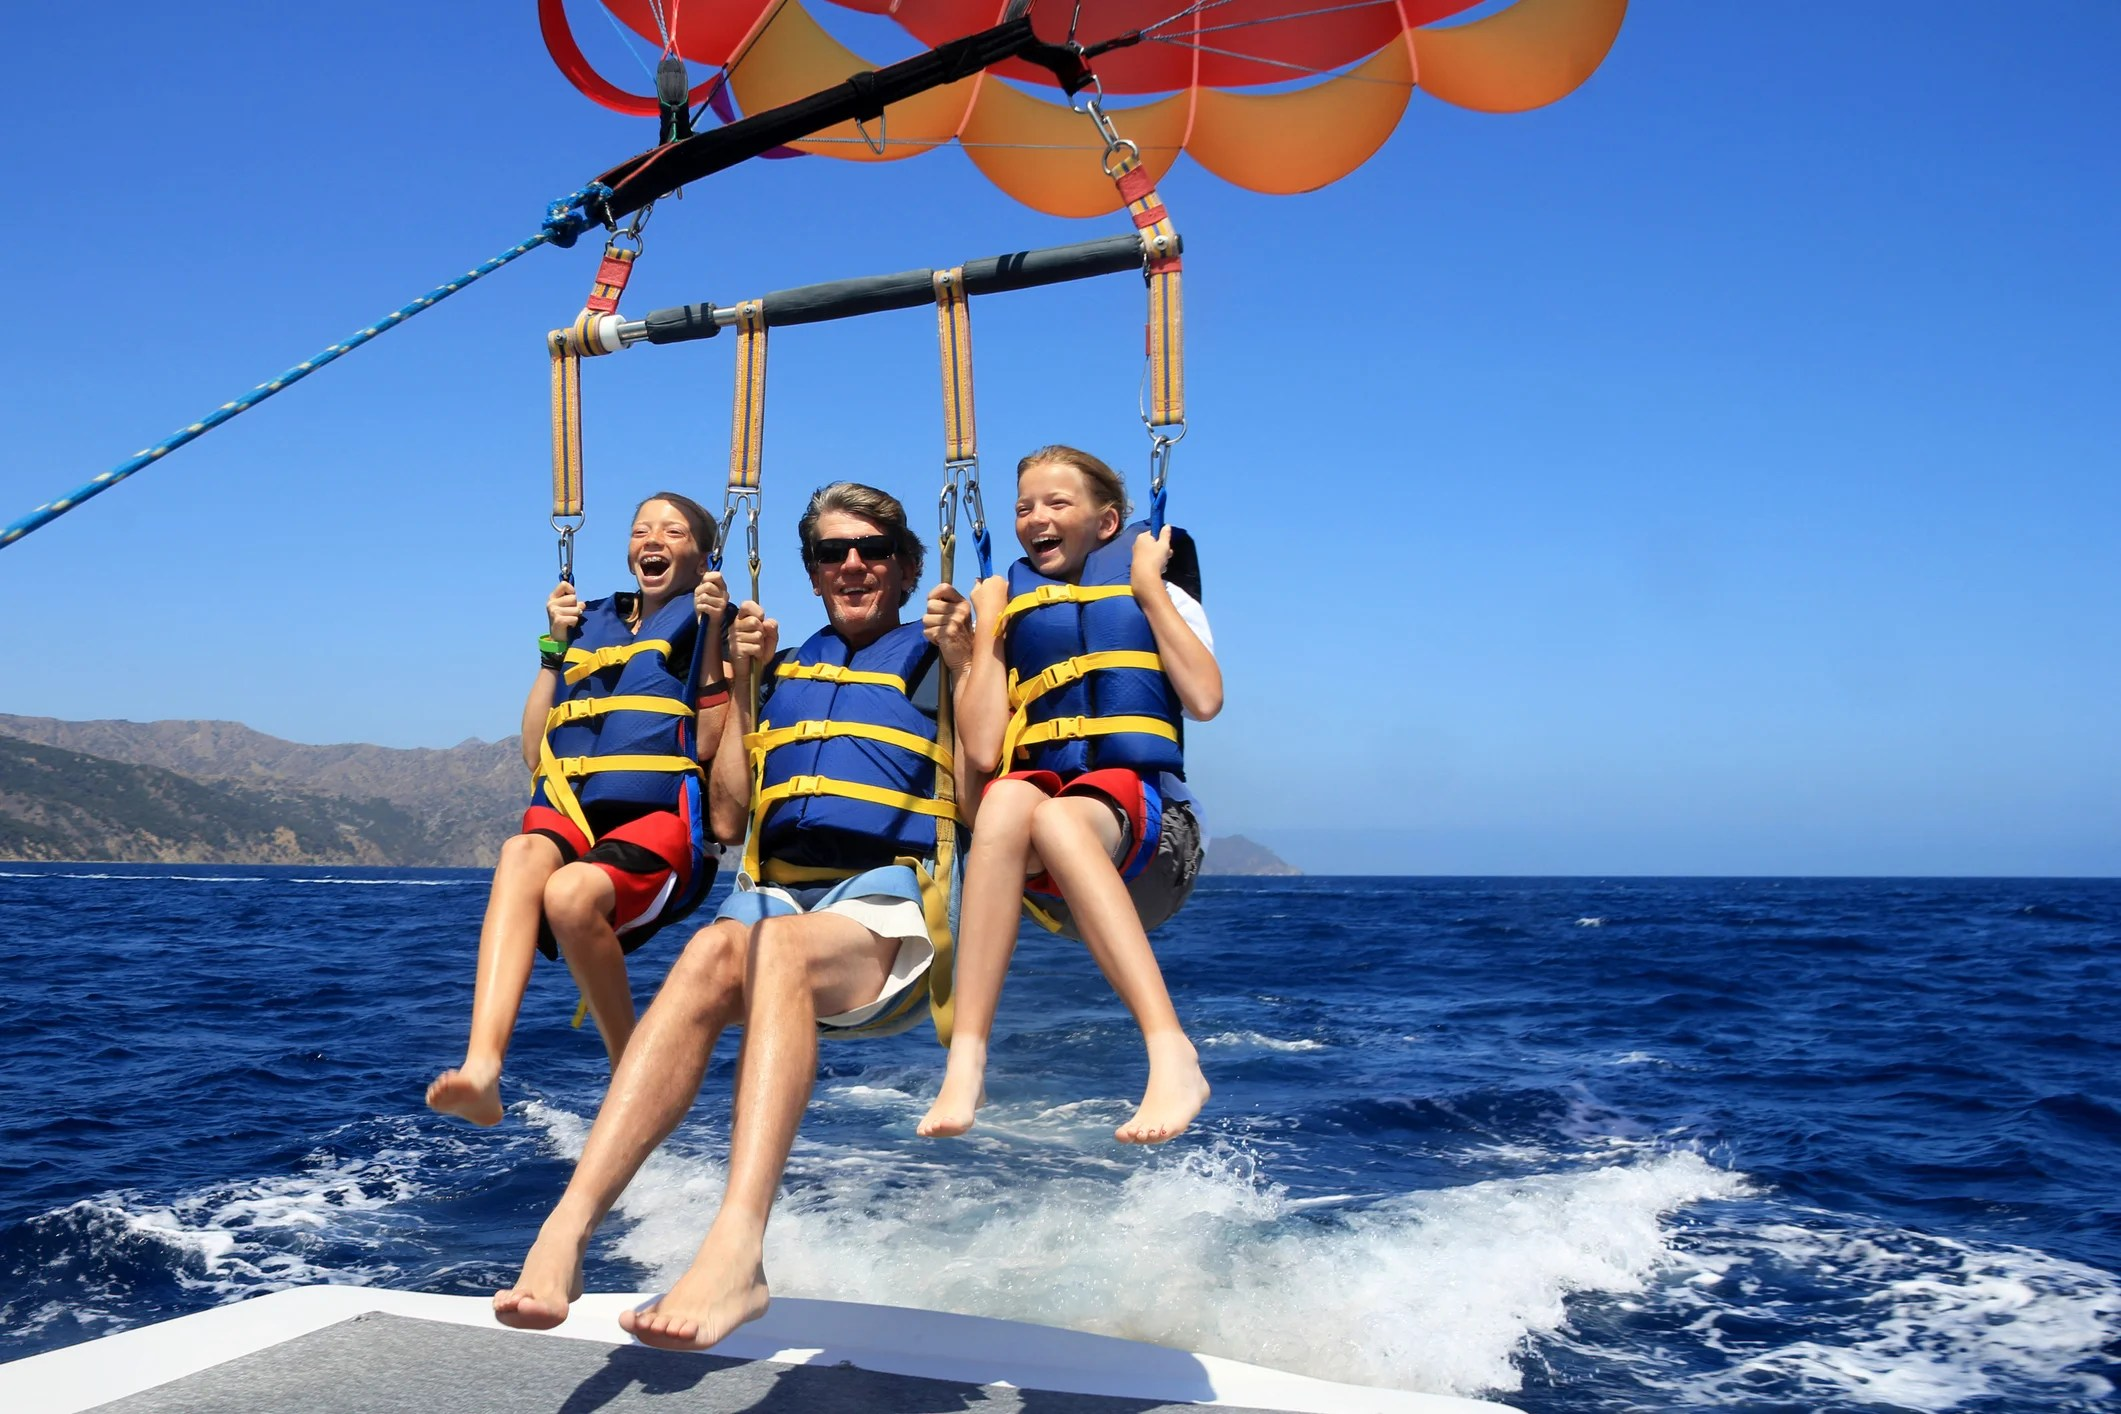 Catalina Island — What Families Should See, Do and Where to Stay